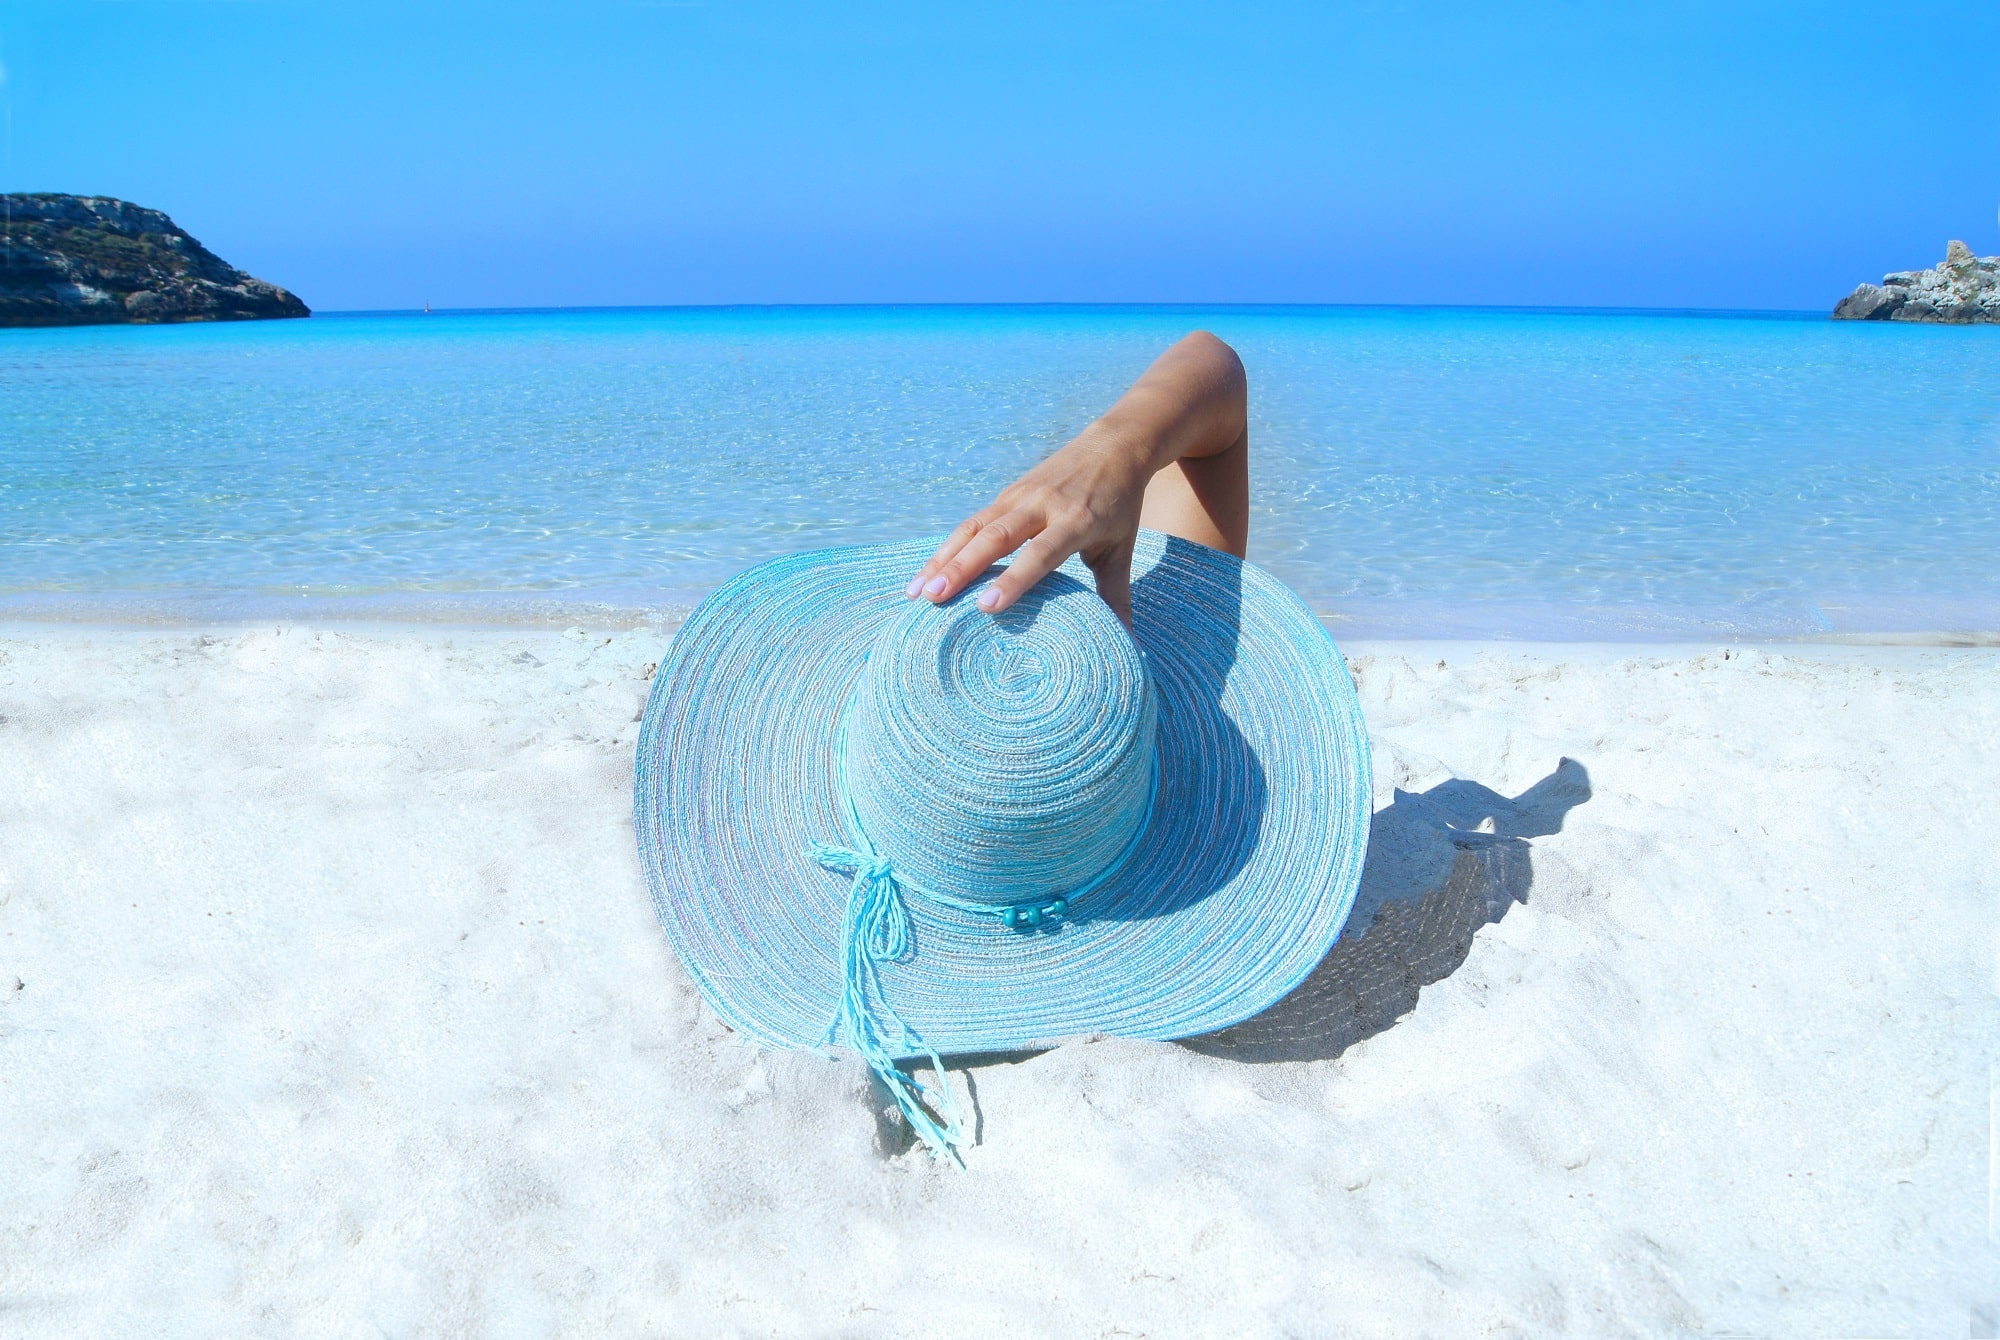 Beach fashion - a blue straw hat shows off beach style